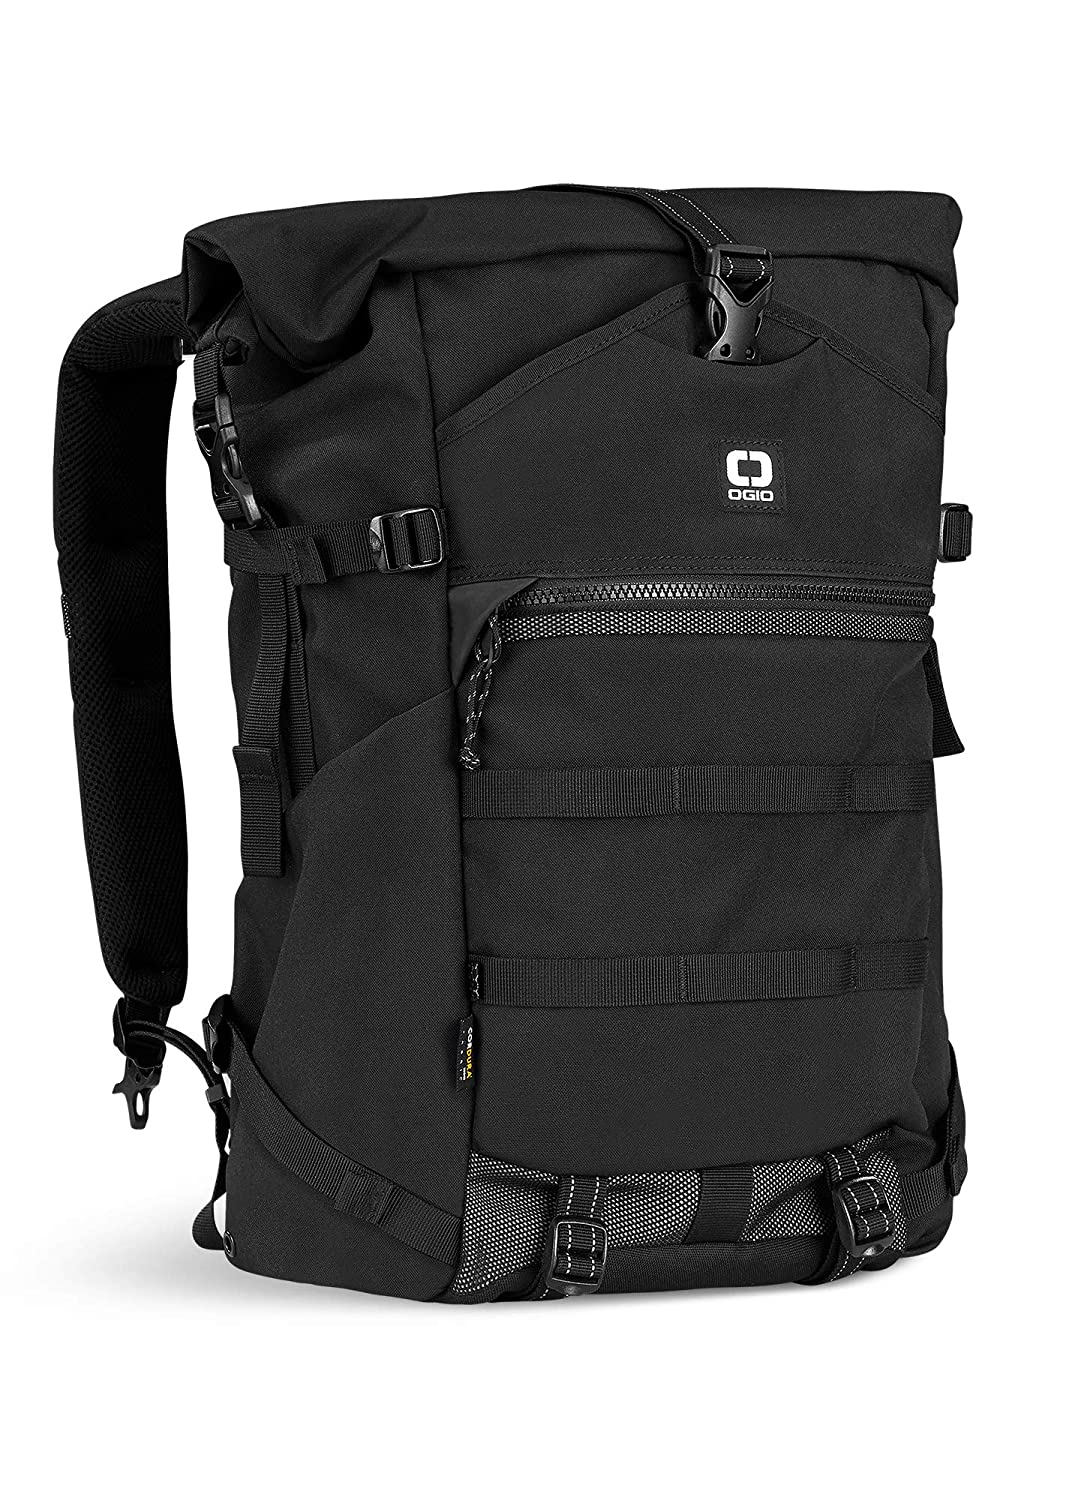 The OGIO ALPHA Convoy 525r Rolltop Backpack travel product recommended by Hayley Kerr on Lifney.